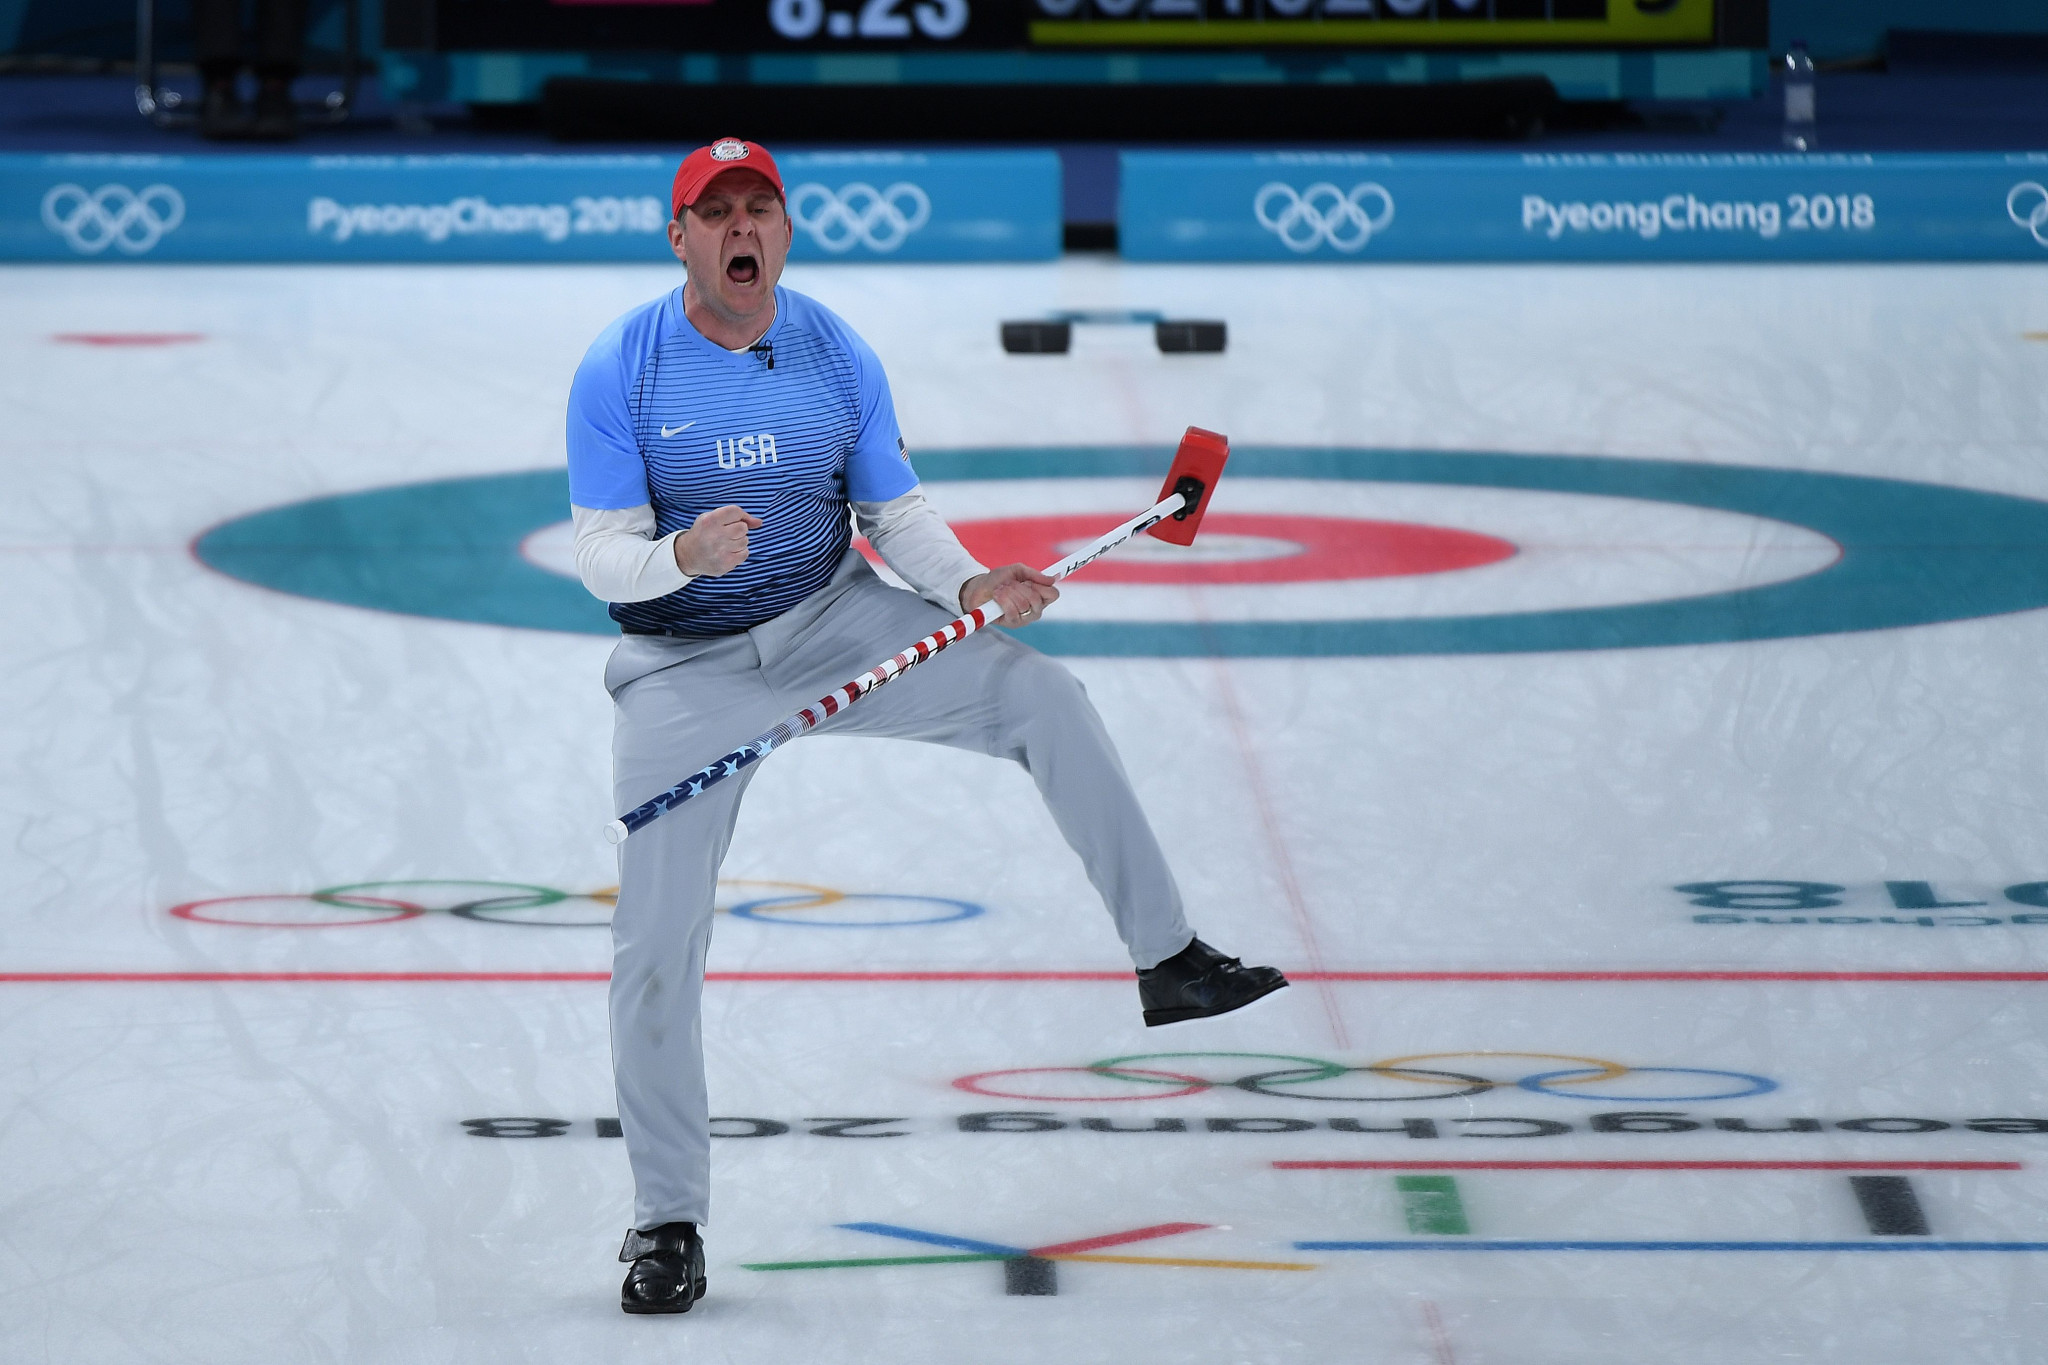 John Shuster, who skipped the lead men's rink in 2018-19, keeps the same team ©Getty Images